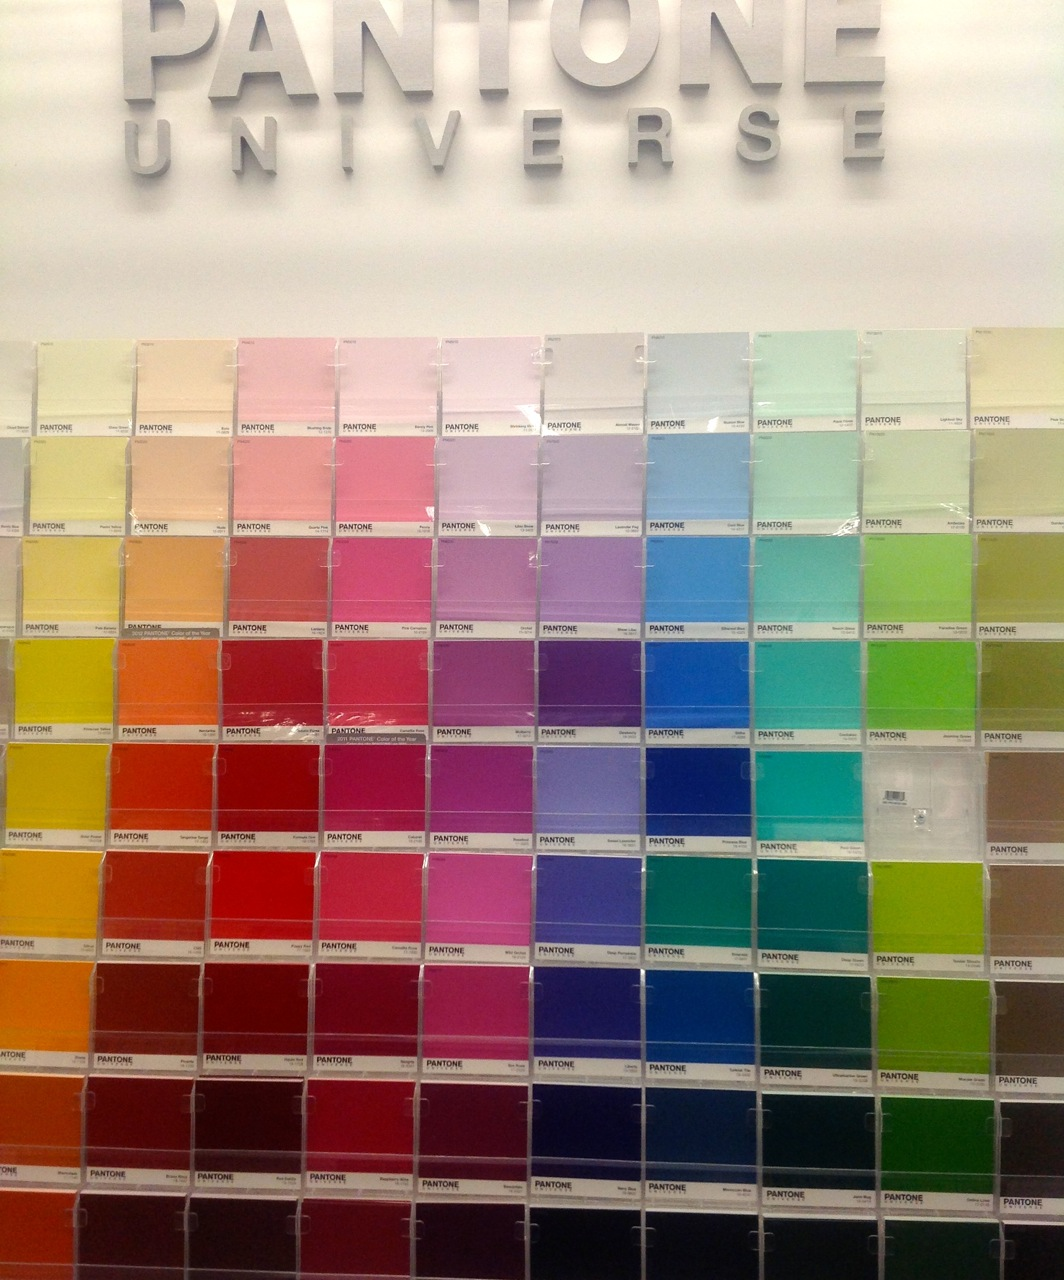 A Color Specialist In Charlotte Hunts For Color At The